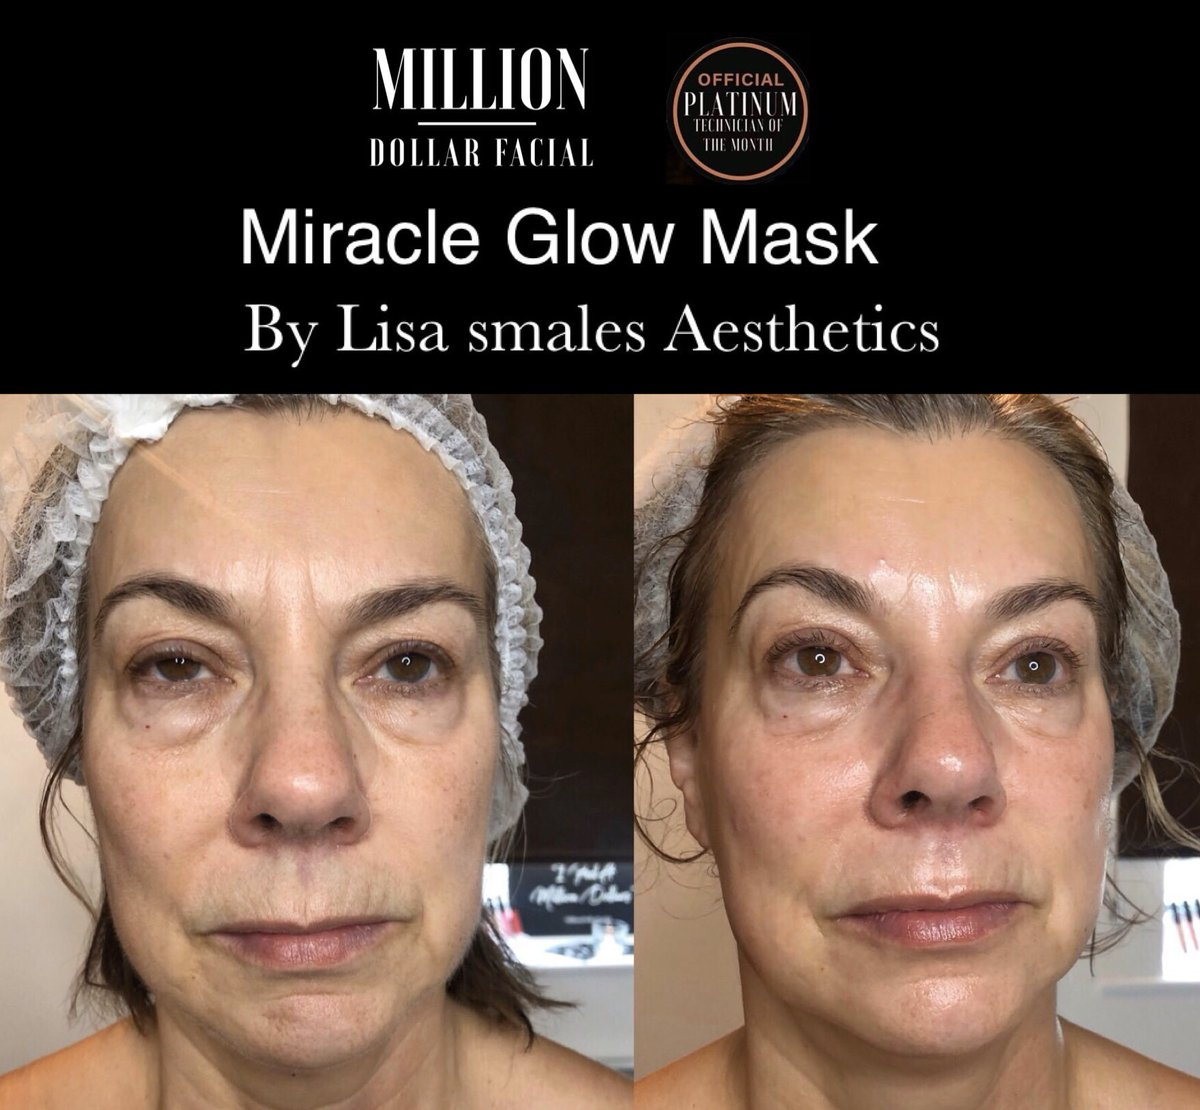 Million Dollar Miracle Glow Mask with Dermaplaning ! Leaving my clients skin so Soft , brighter , lighter tighter !  Amazing !  #Milliondollarmask #milliondollarglow #milliandollarfacial #milliondollarfacials #leeds #horsforth #lisasmalesaestheticspic.twitter.com/qMz0wND9AW